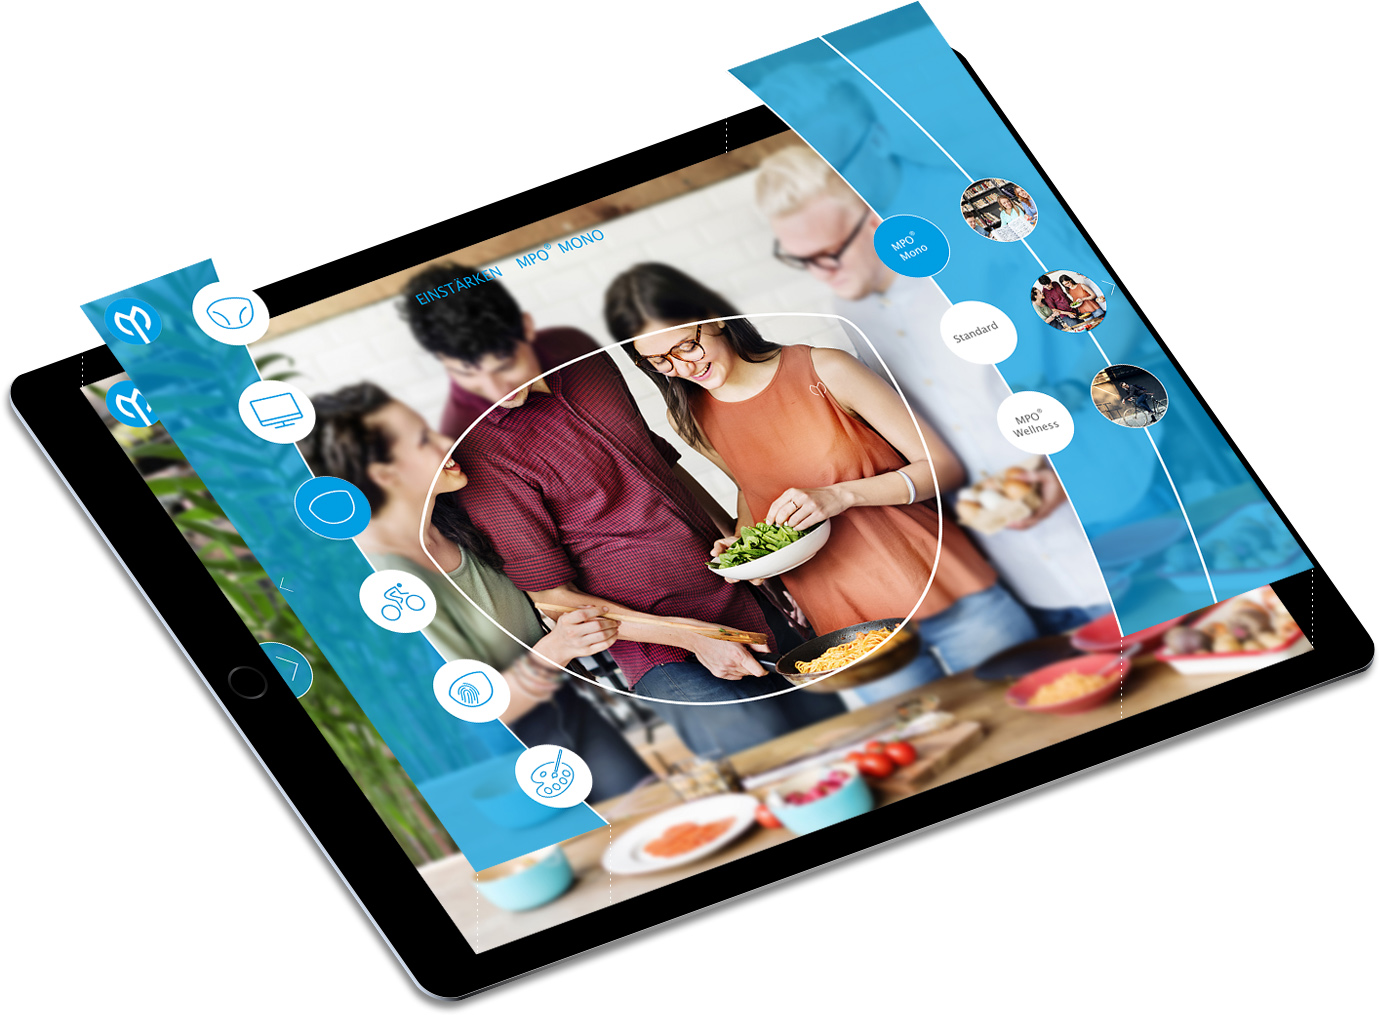 Pachleitner-App Referenz-Screen am Tablet